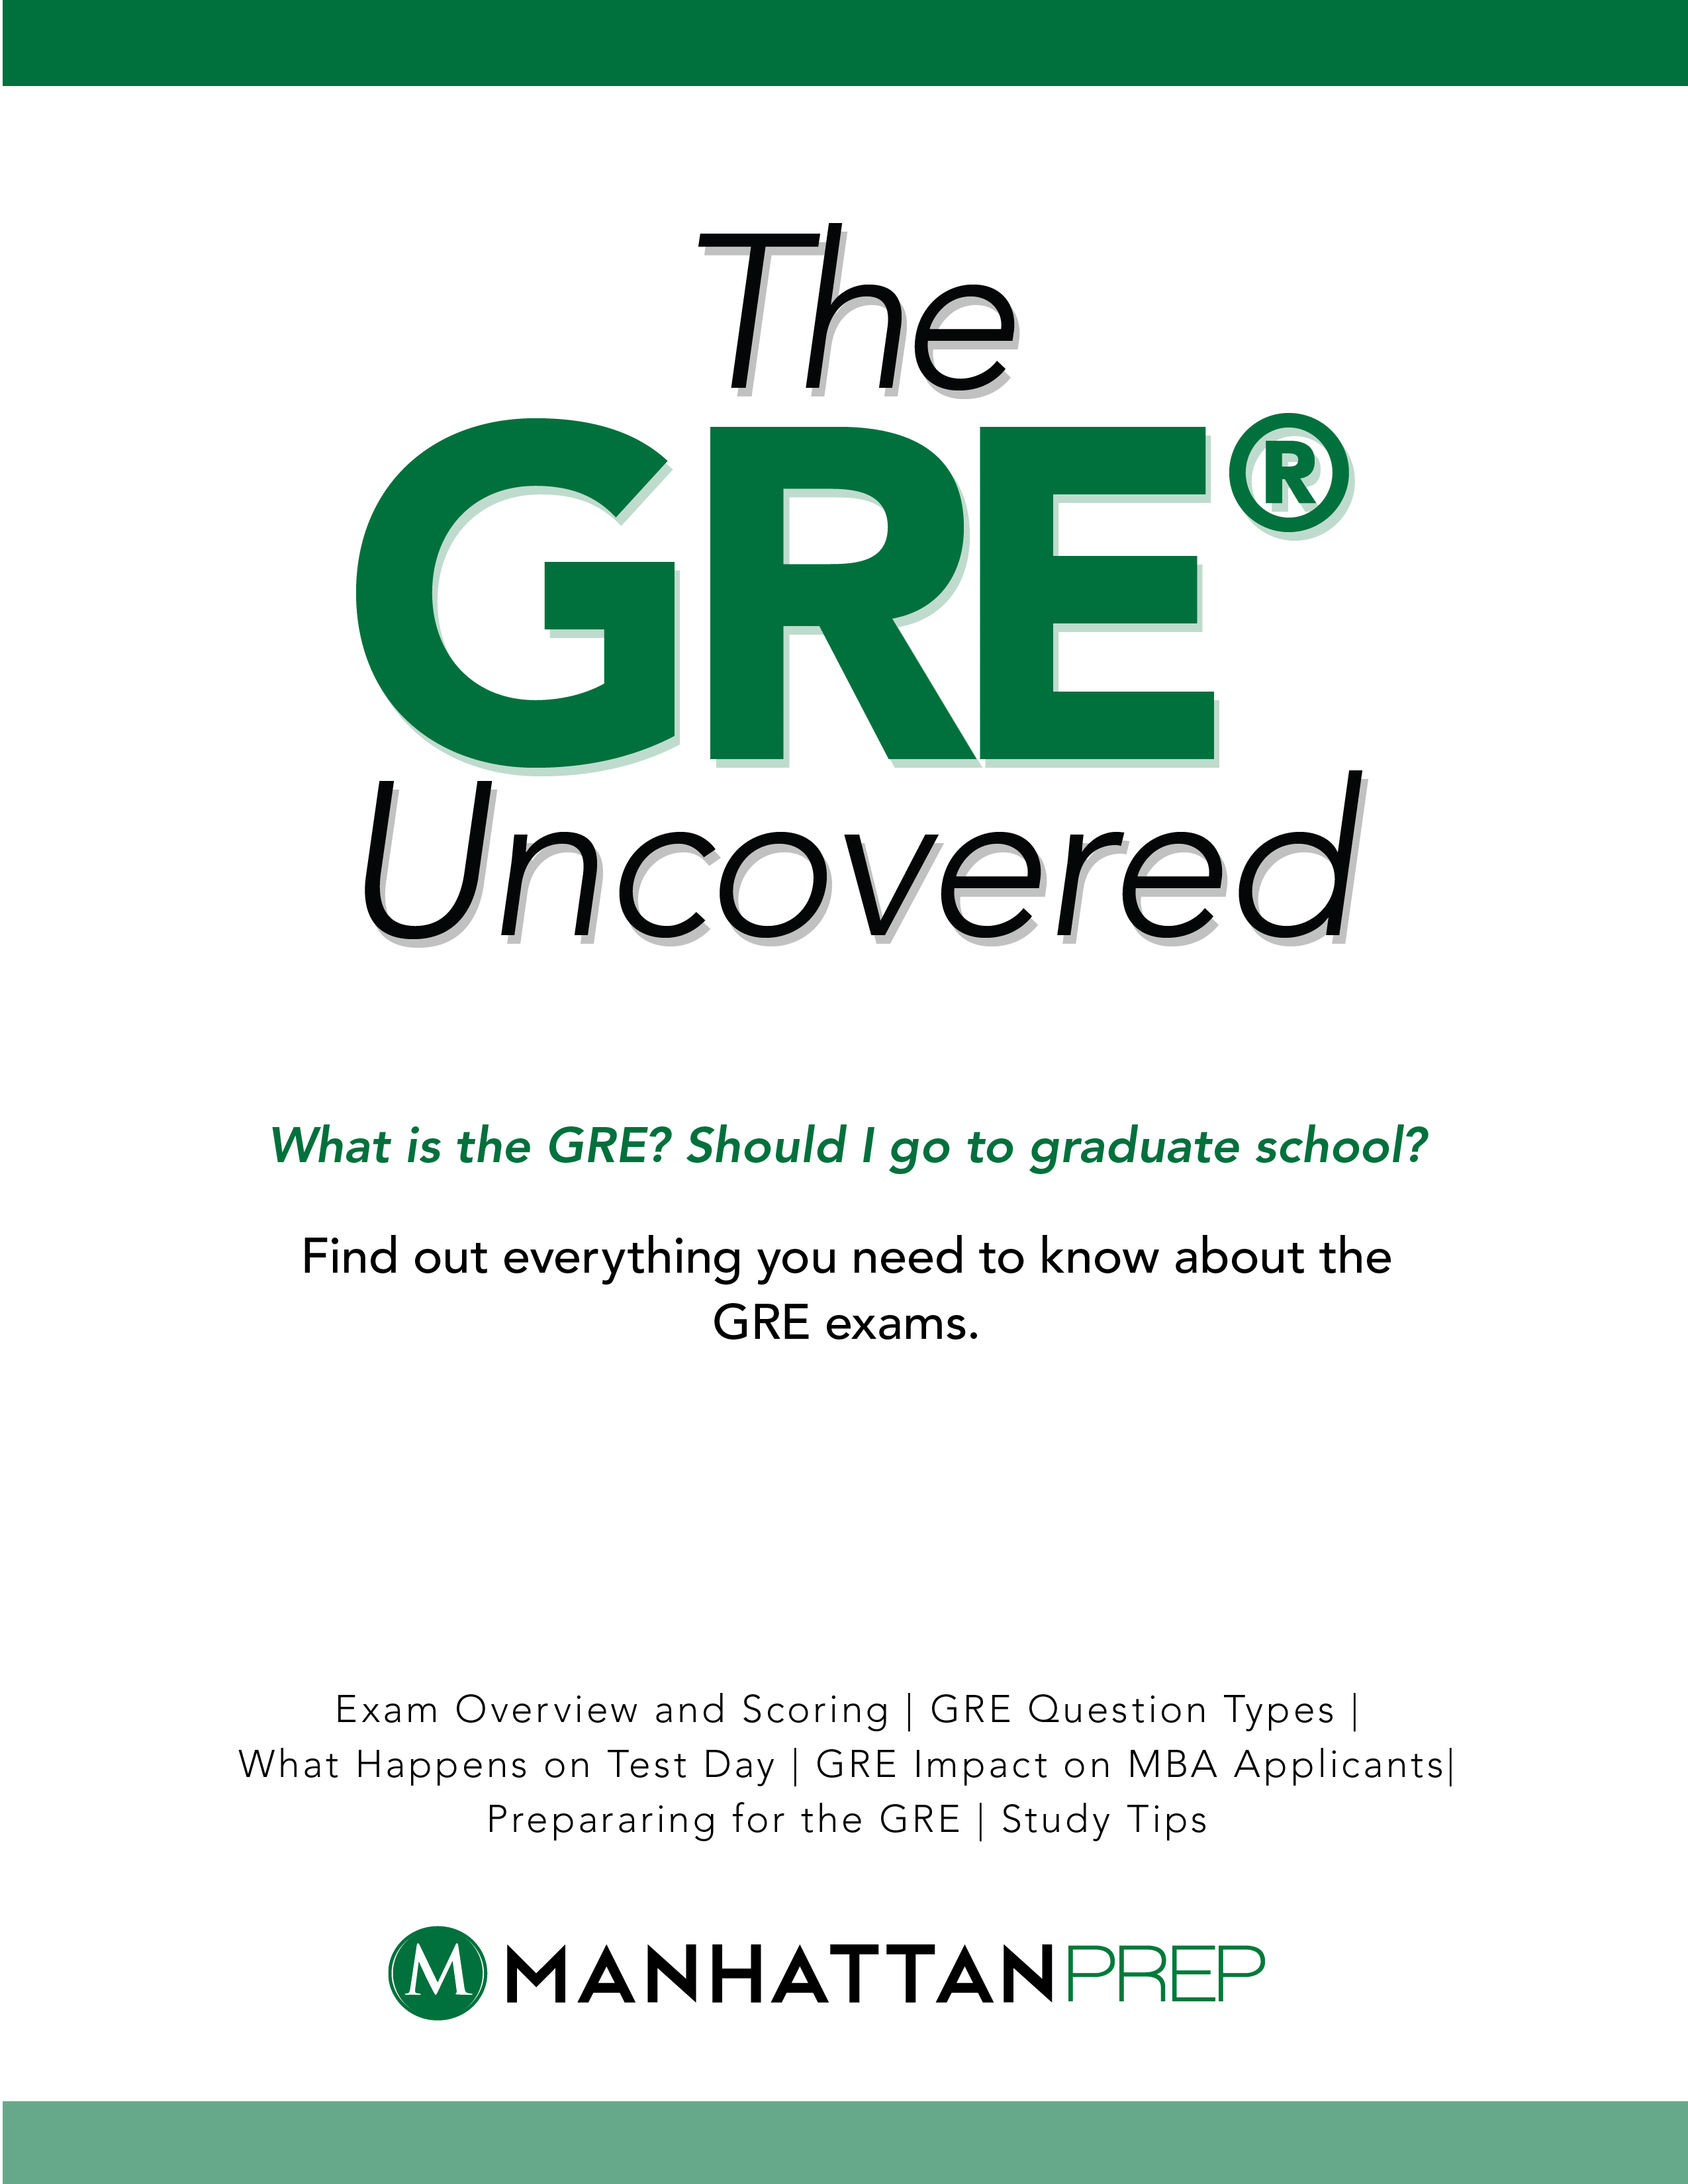 The GRE Uncovered